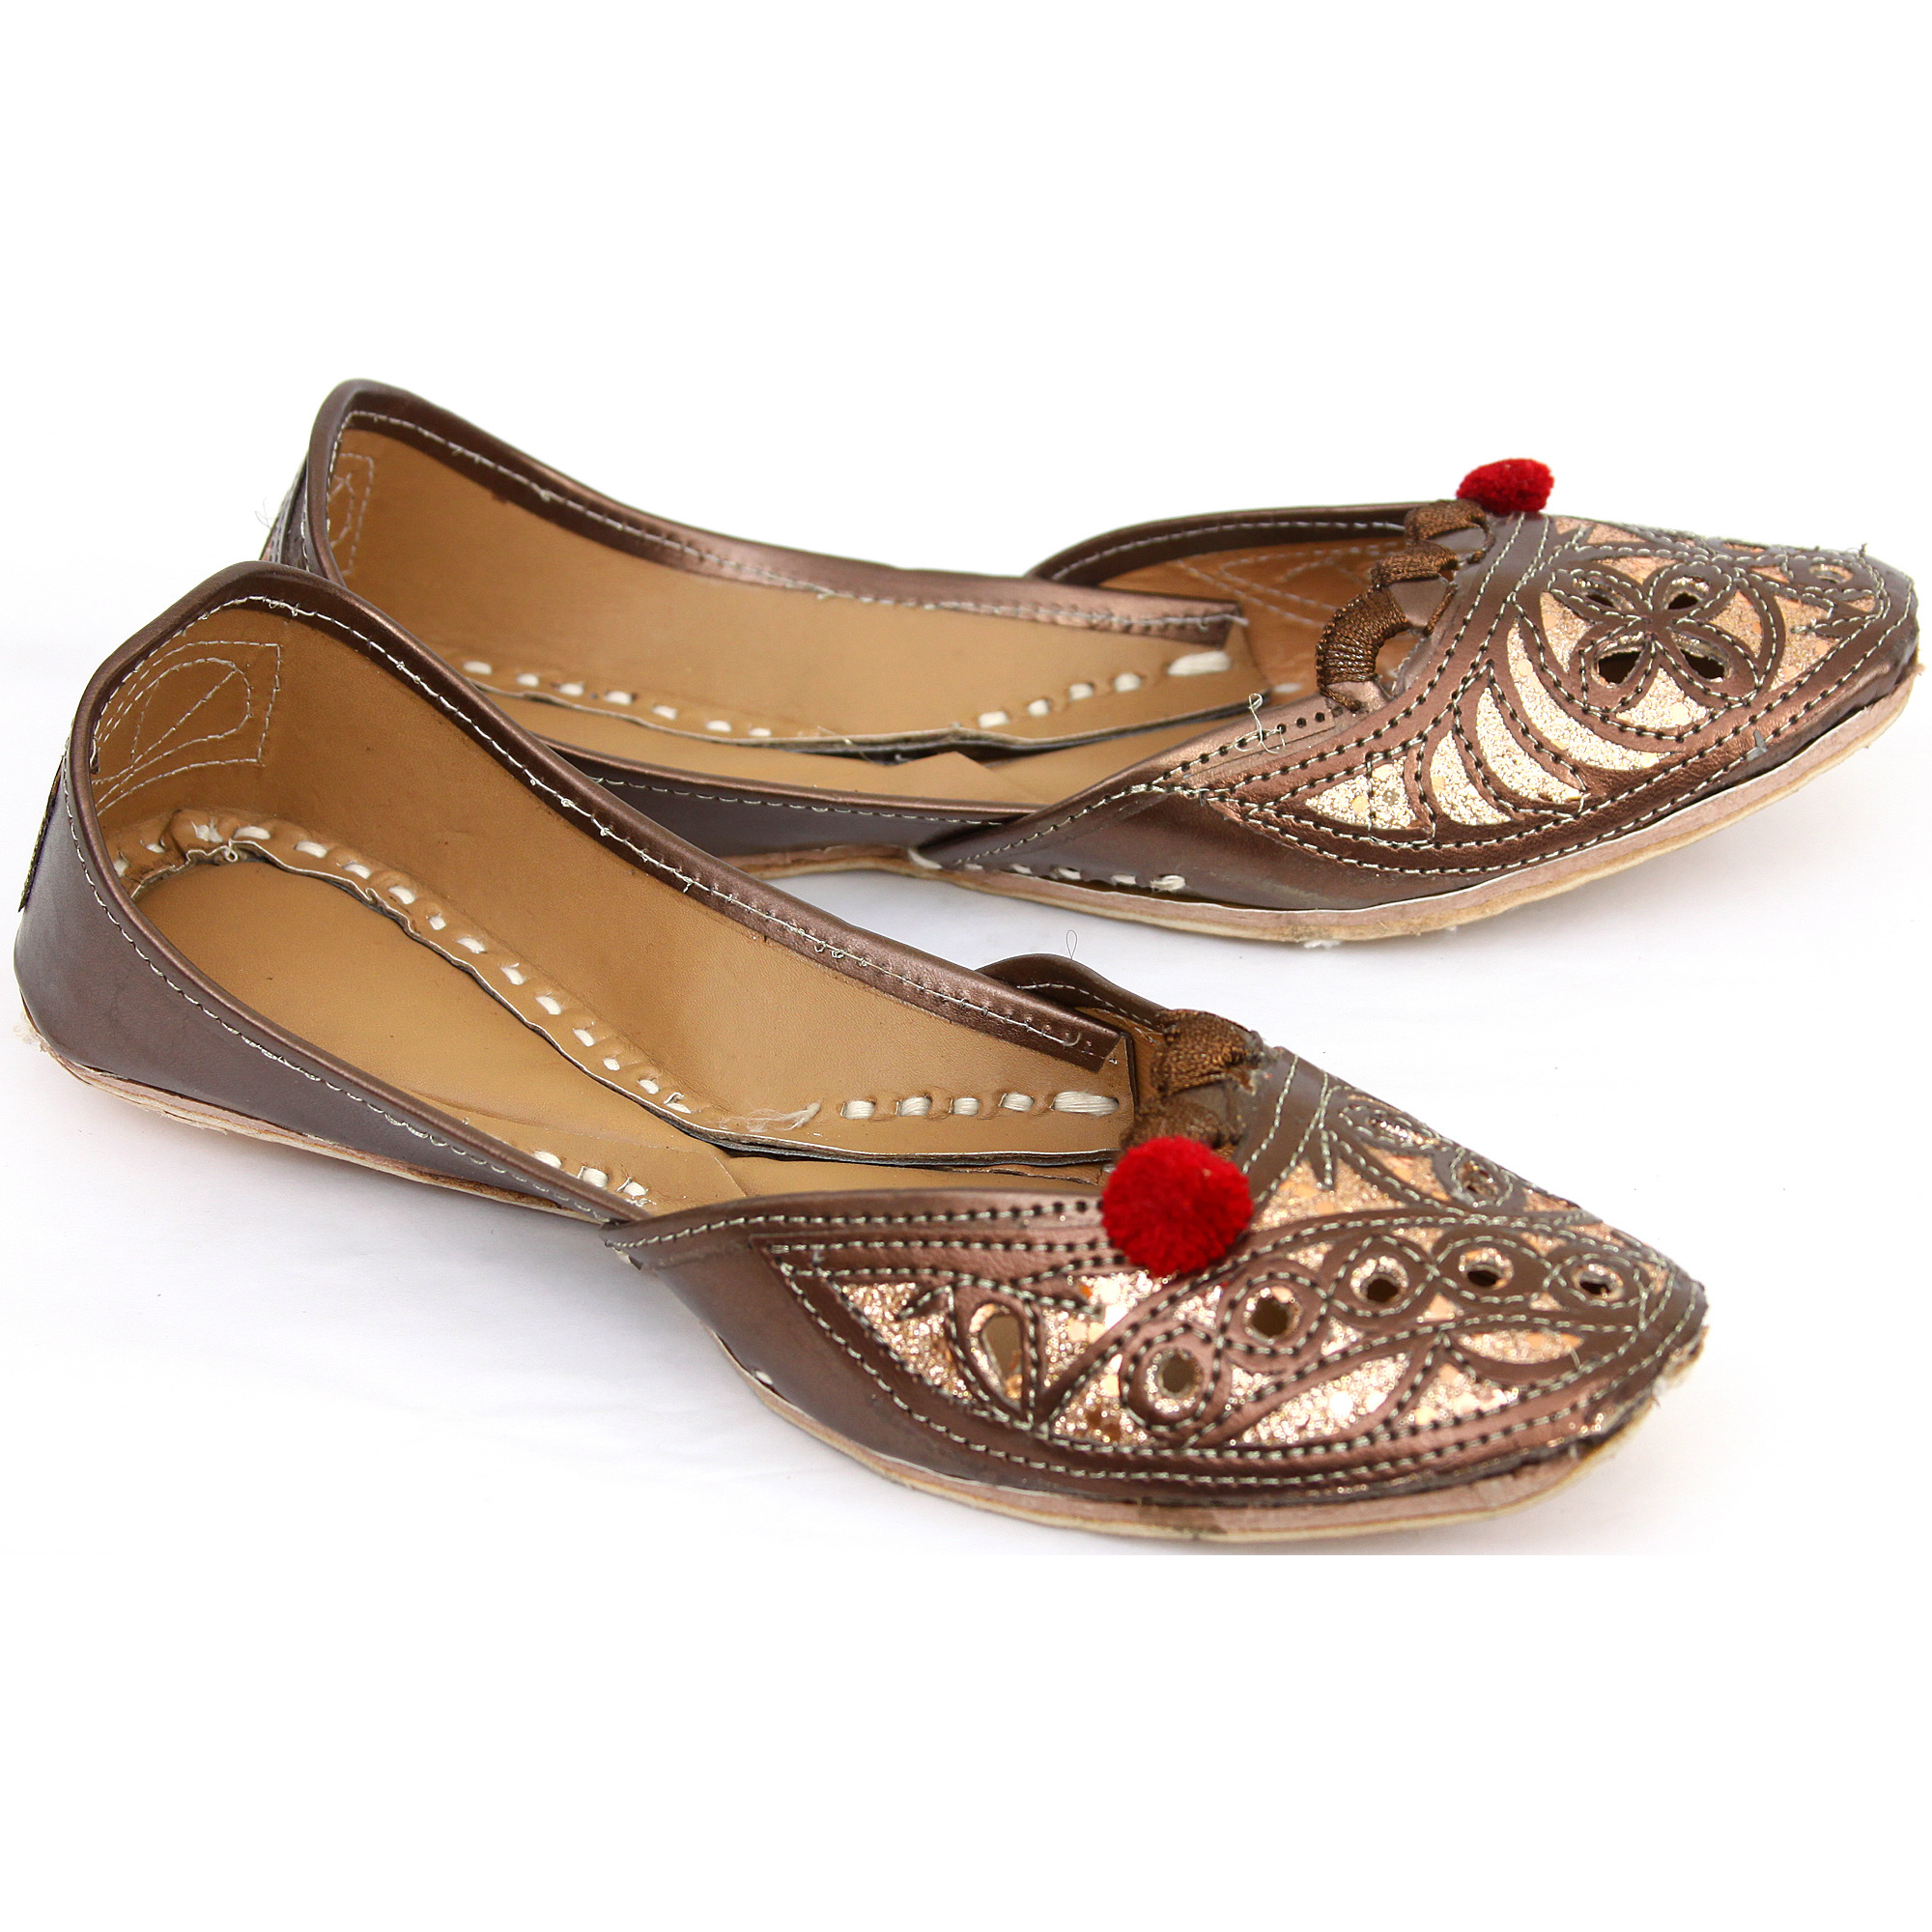 Toffee-Brown Mojaris with Embroidery